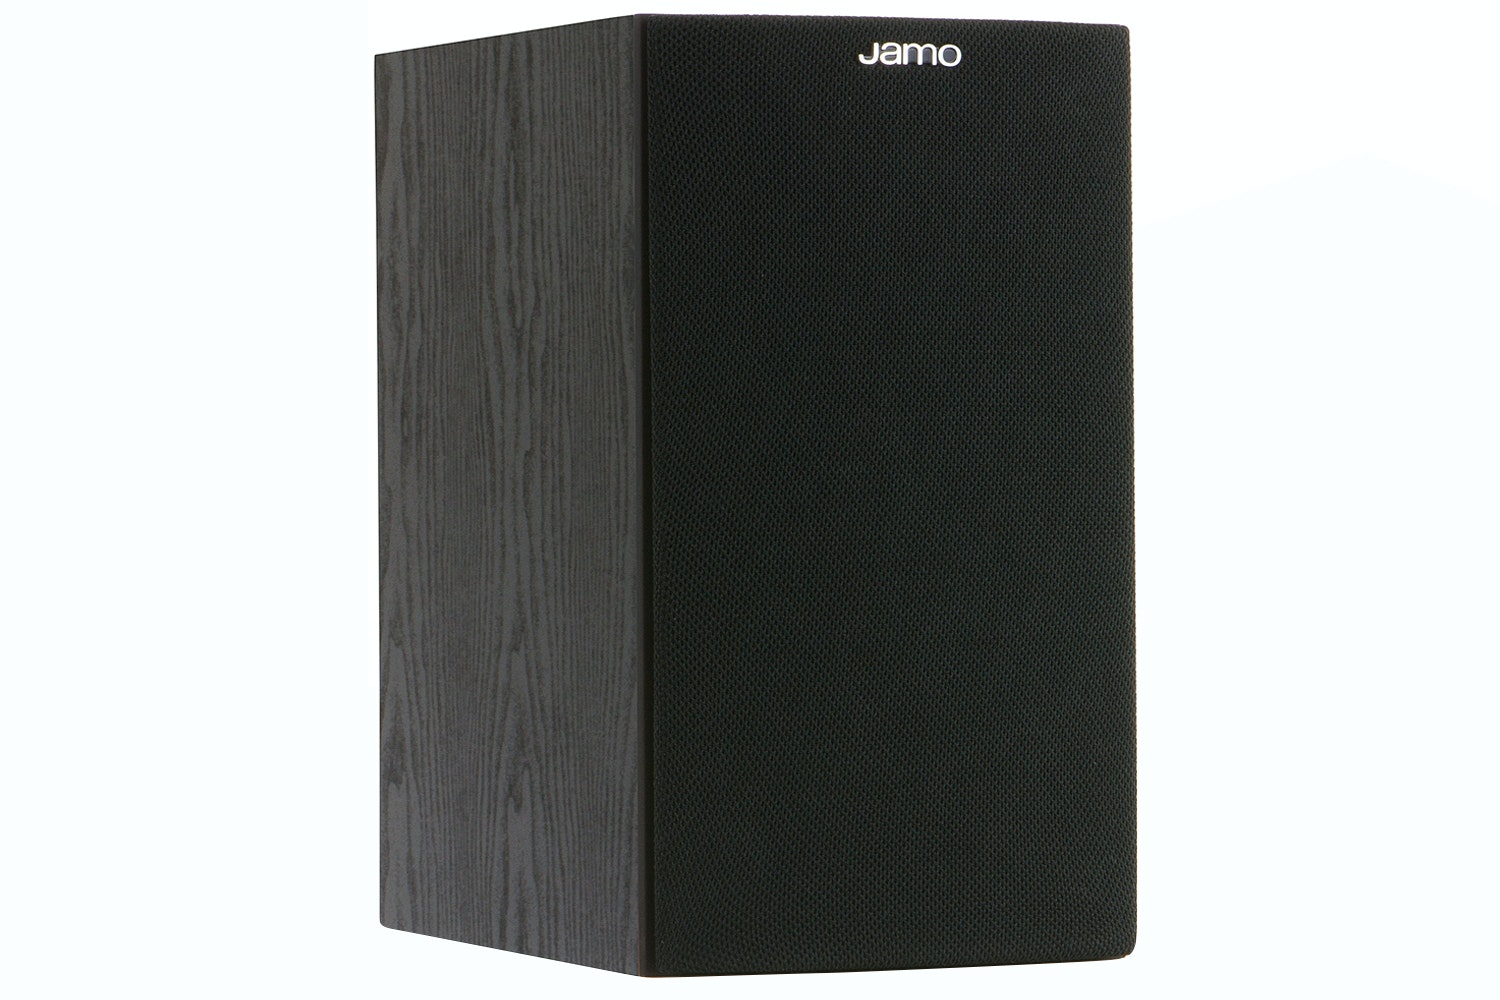 Jamo S 622 Bookshelf Speaker | Black